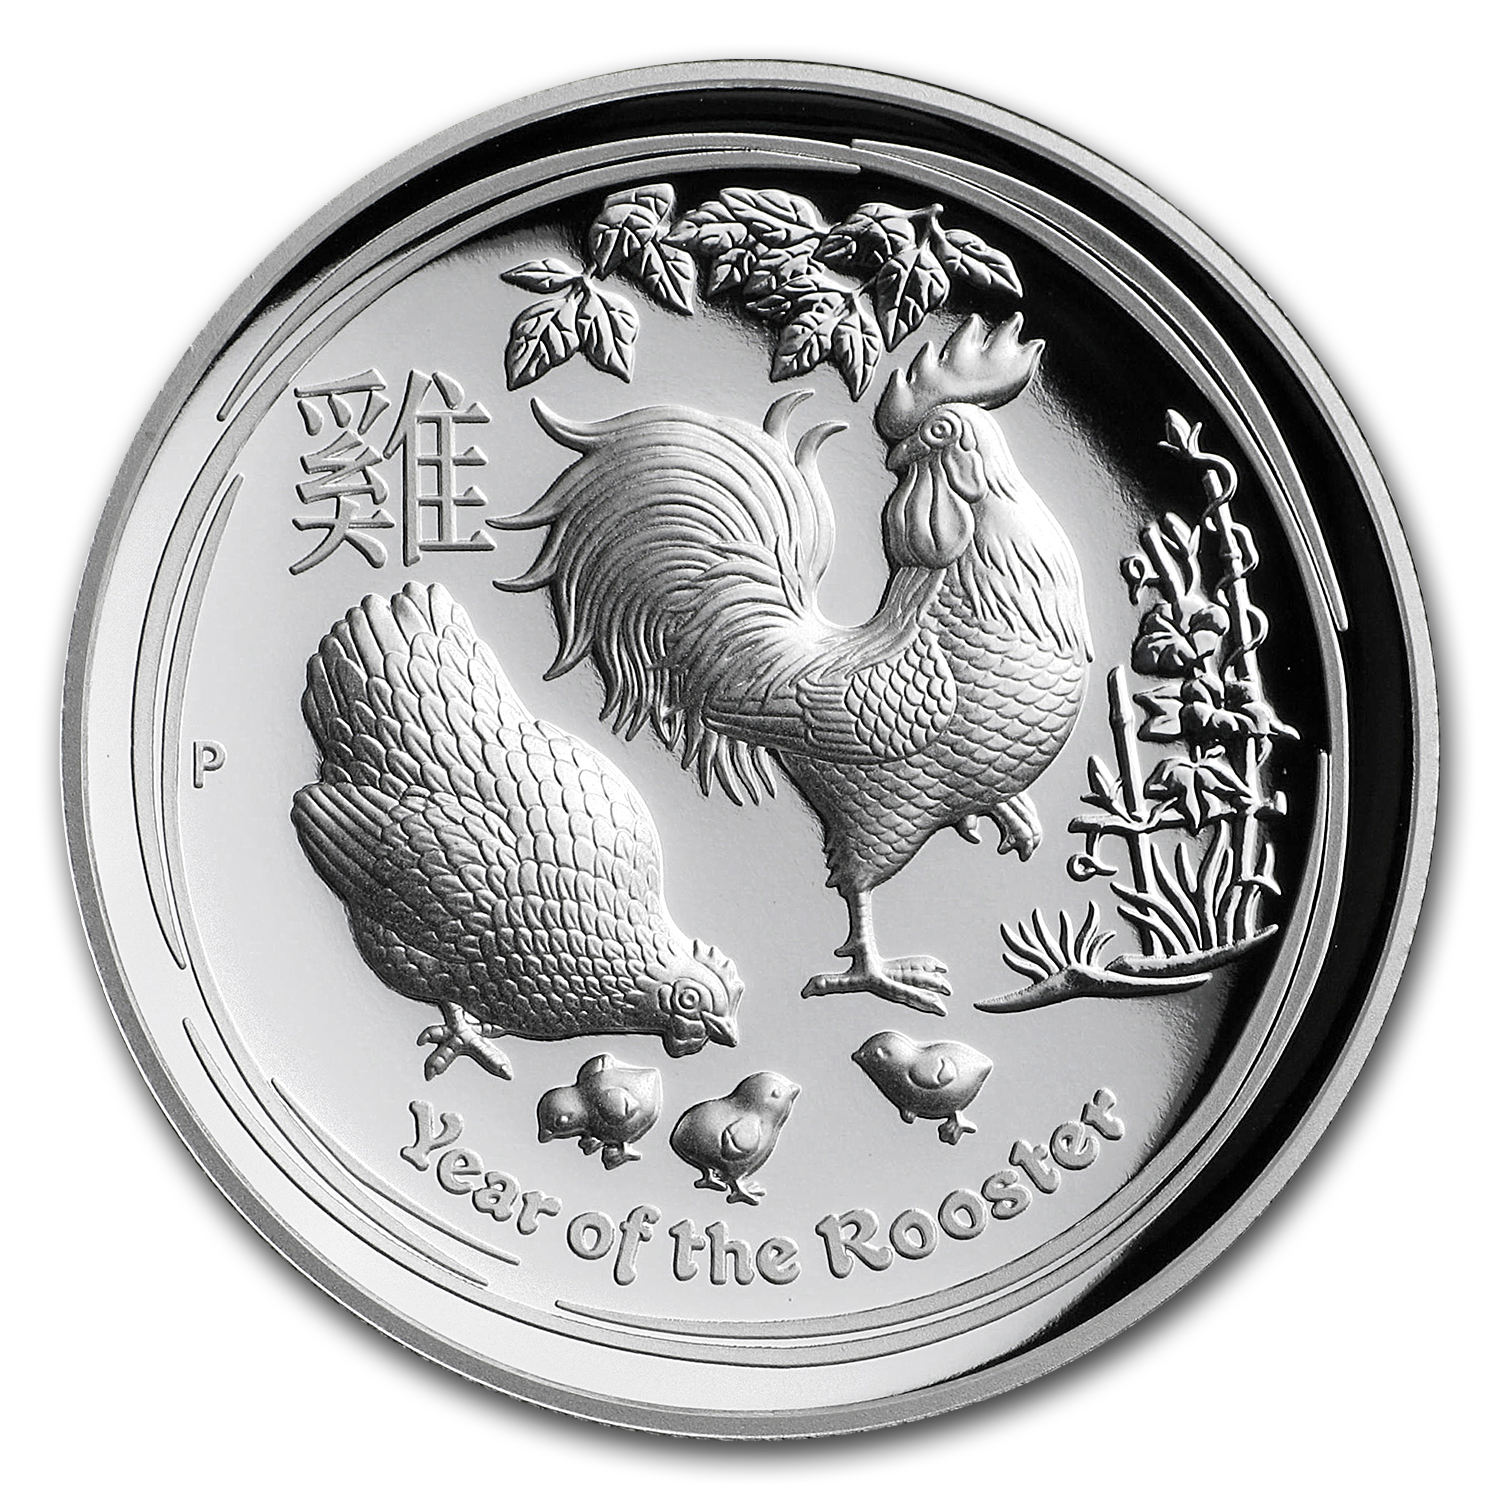 2017 Australia 1 oz Silver Proof Lunar Rooster High Relief